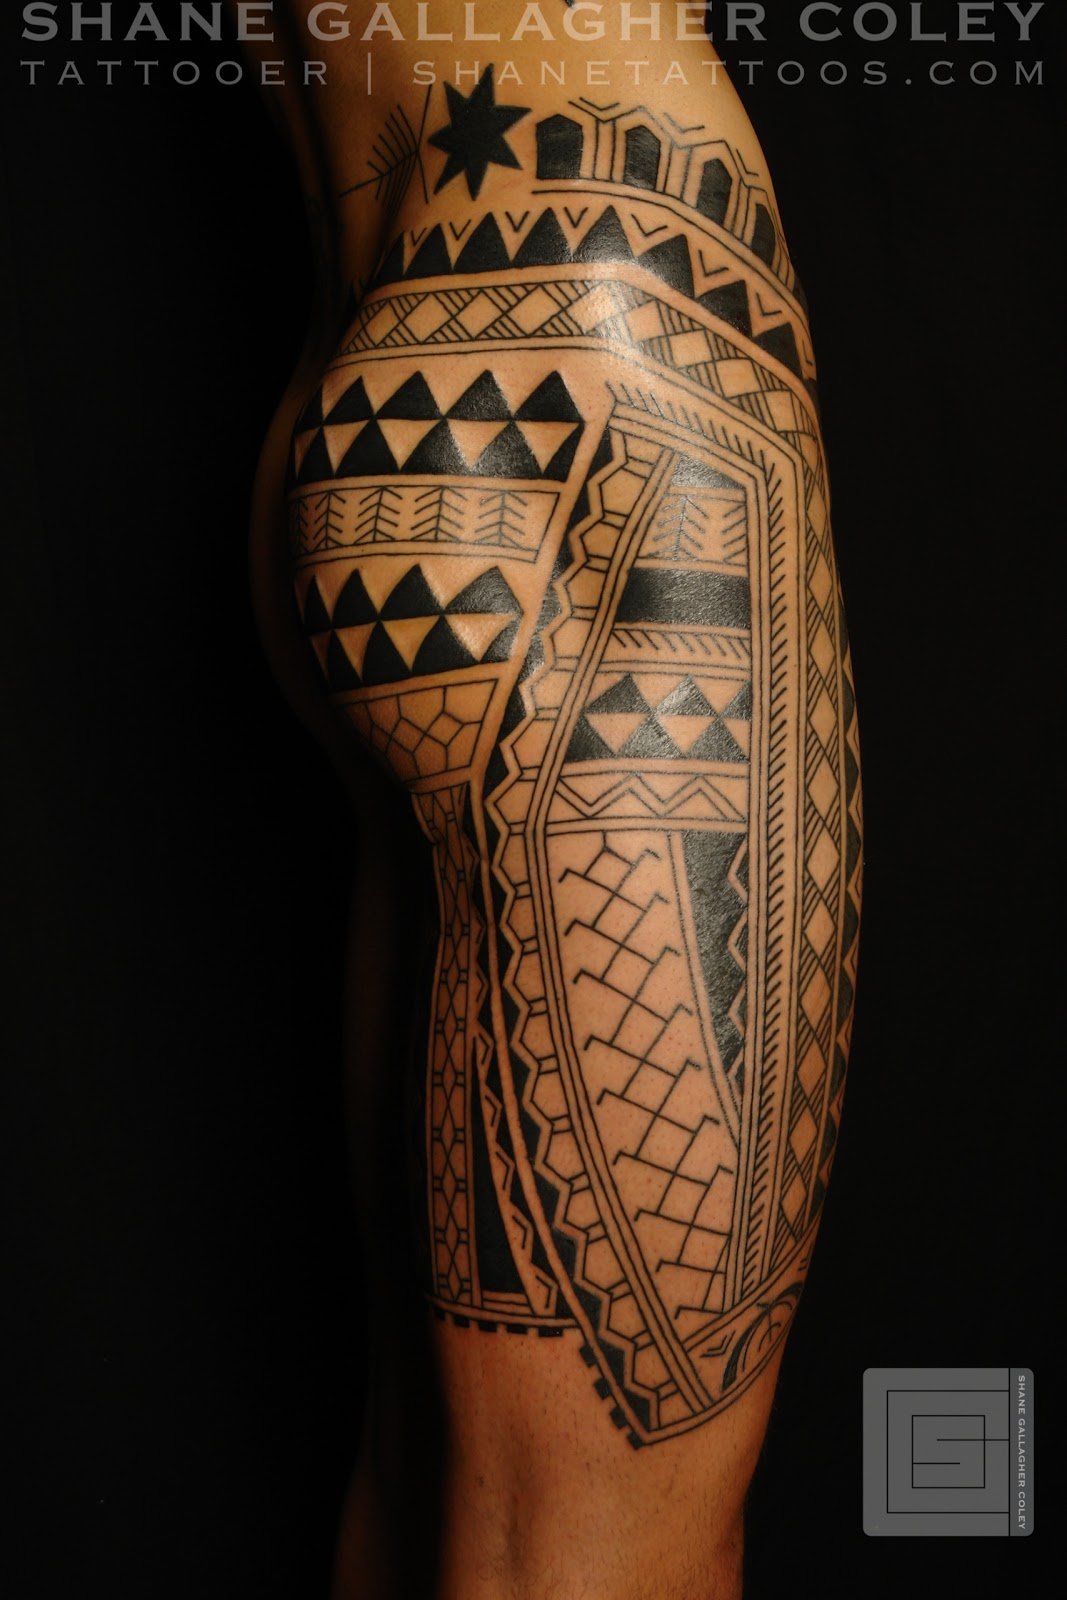 maori polynesian tattoo filipino leg tattoo. Black Bedroom Furniture Sets. Home Design Ideas